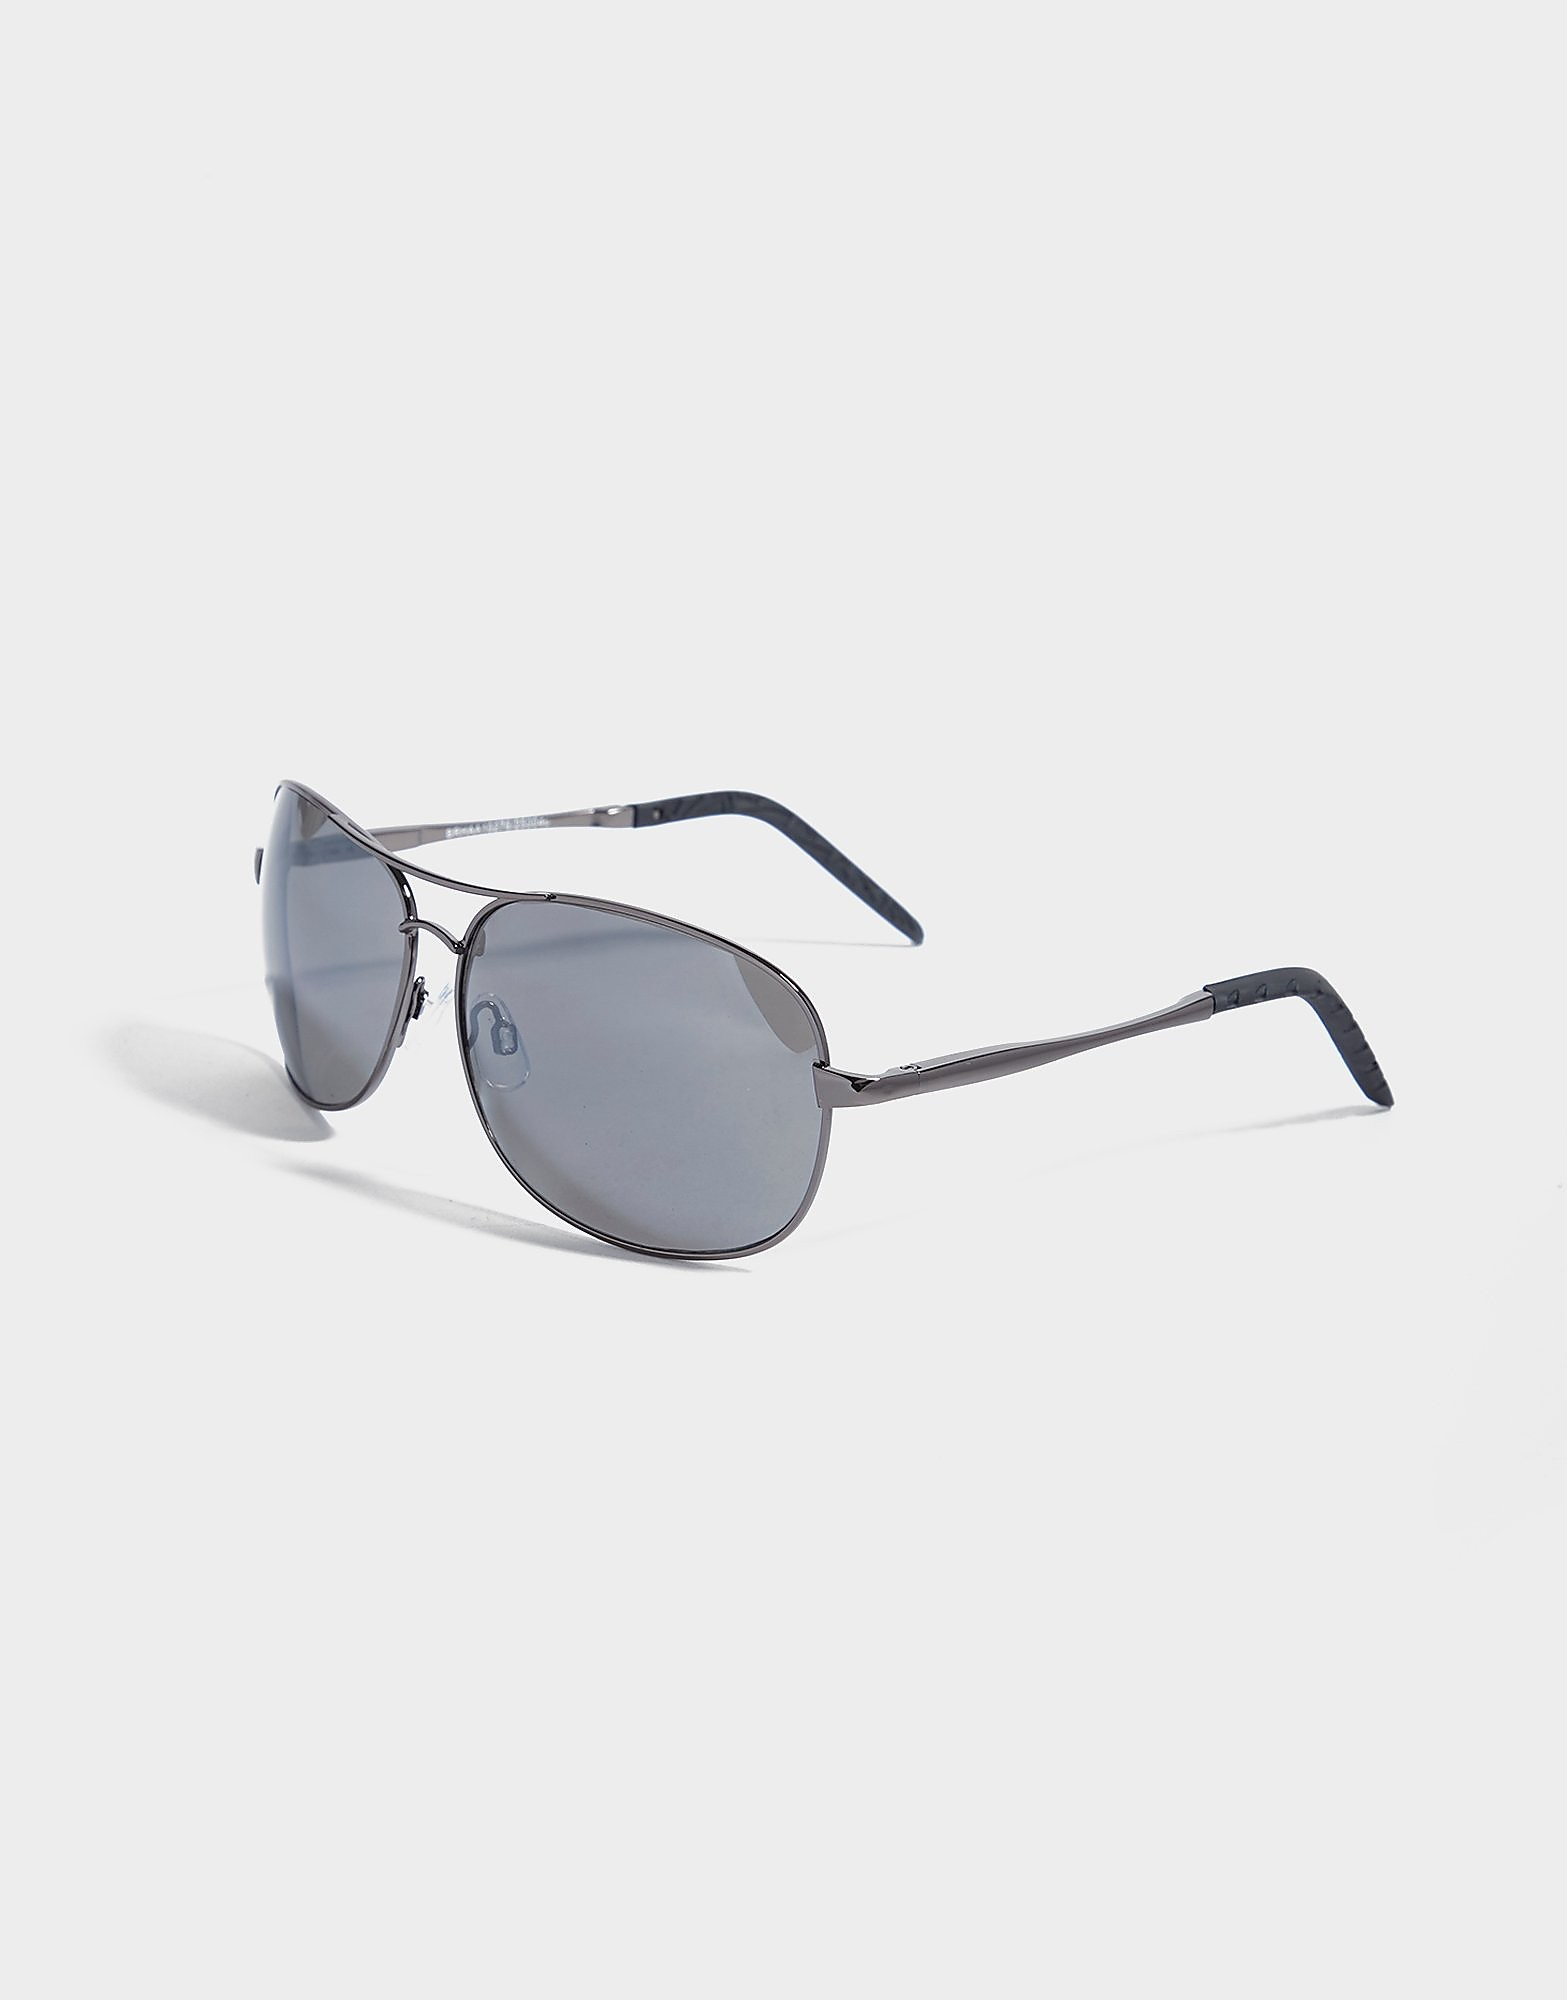 Brookhaven Gafas de sol Mark estilo aviador